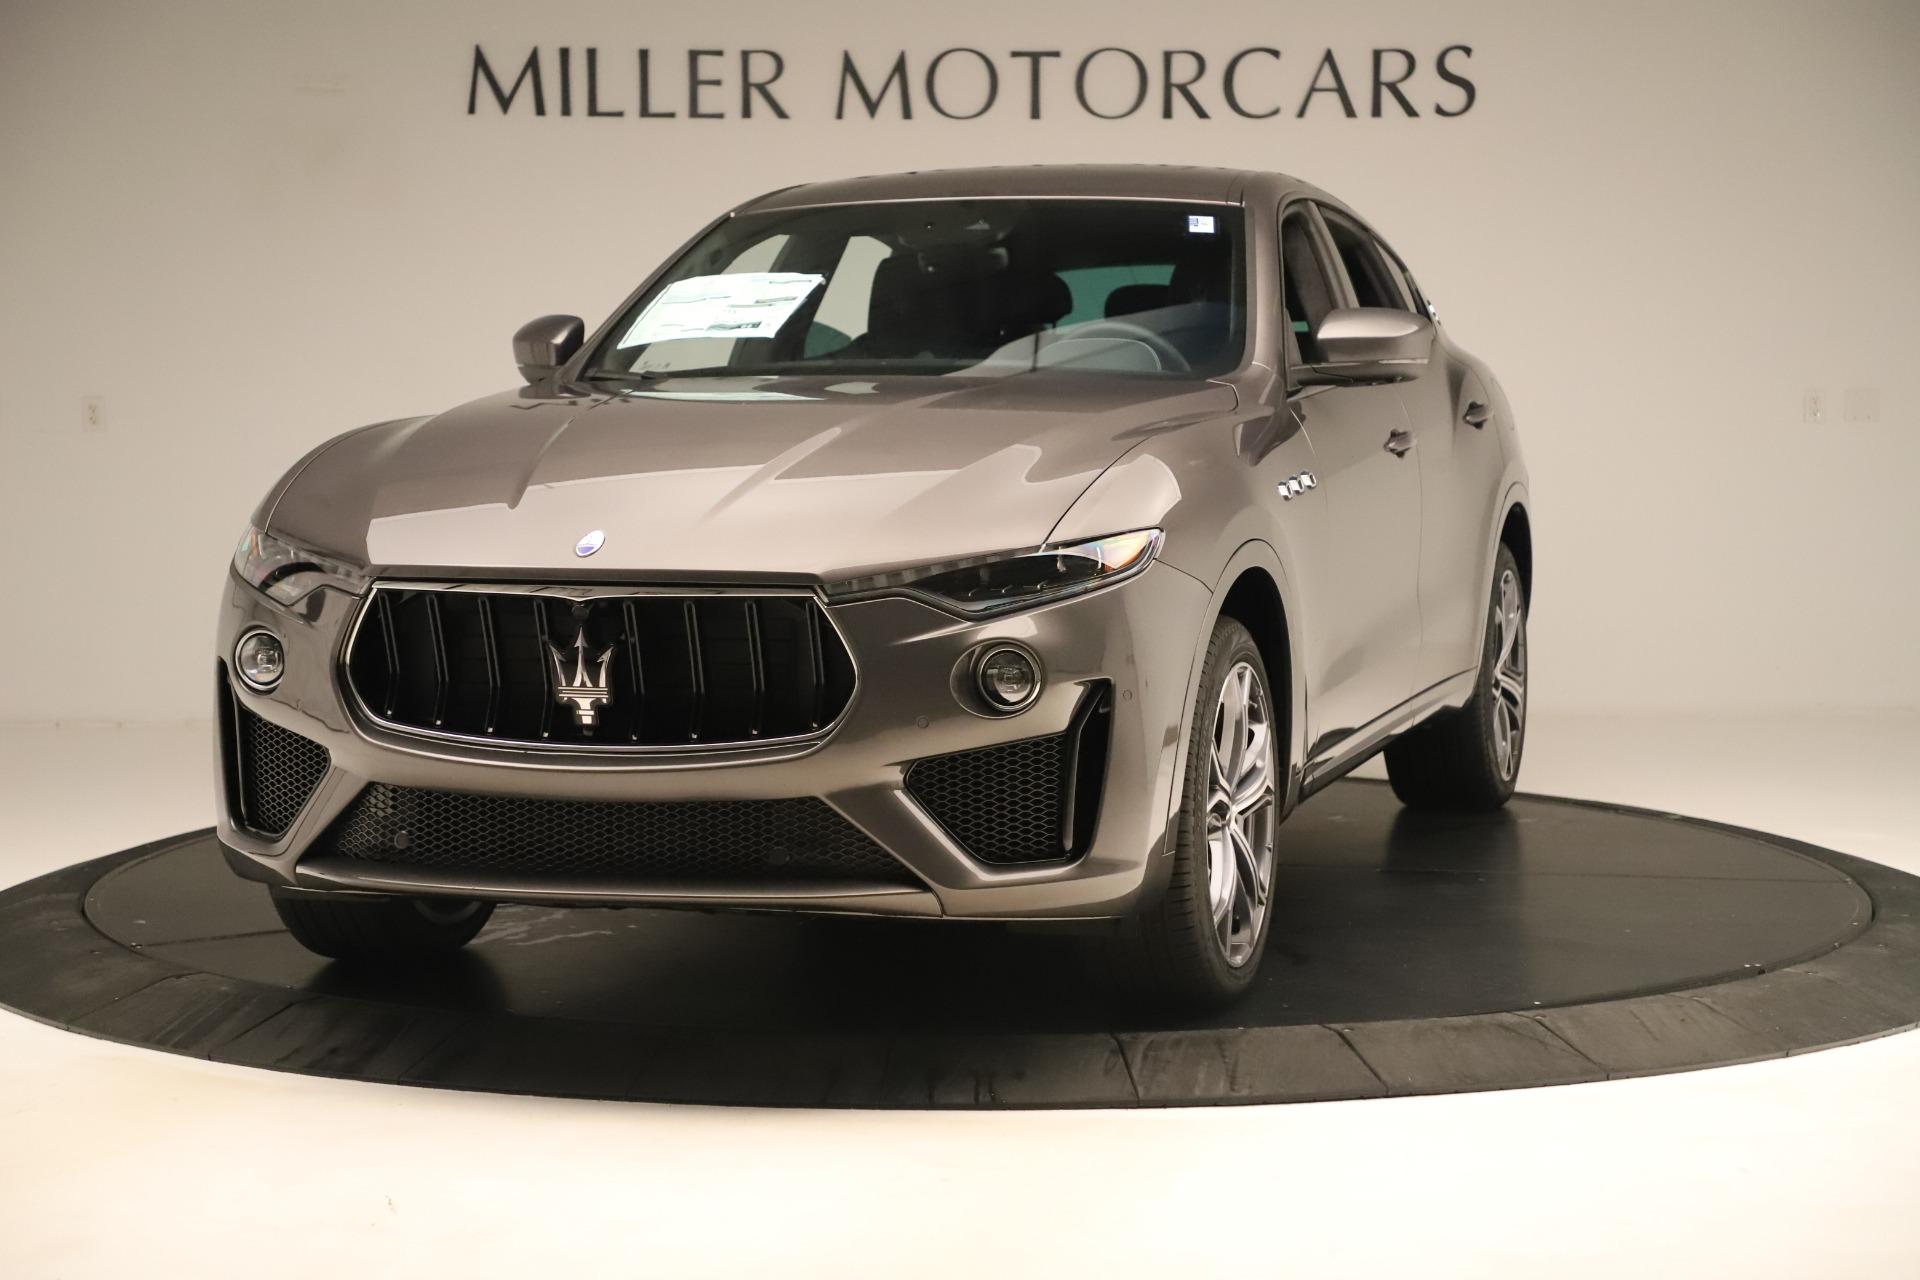 New 2019 Maserati Levante GTS for sale Sold at Maserati of Westport in Westport CT 06880 1